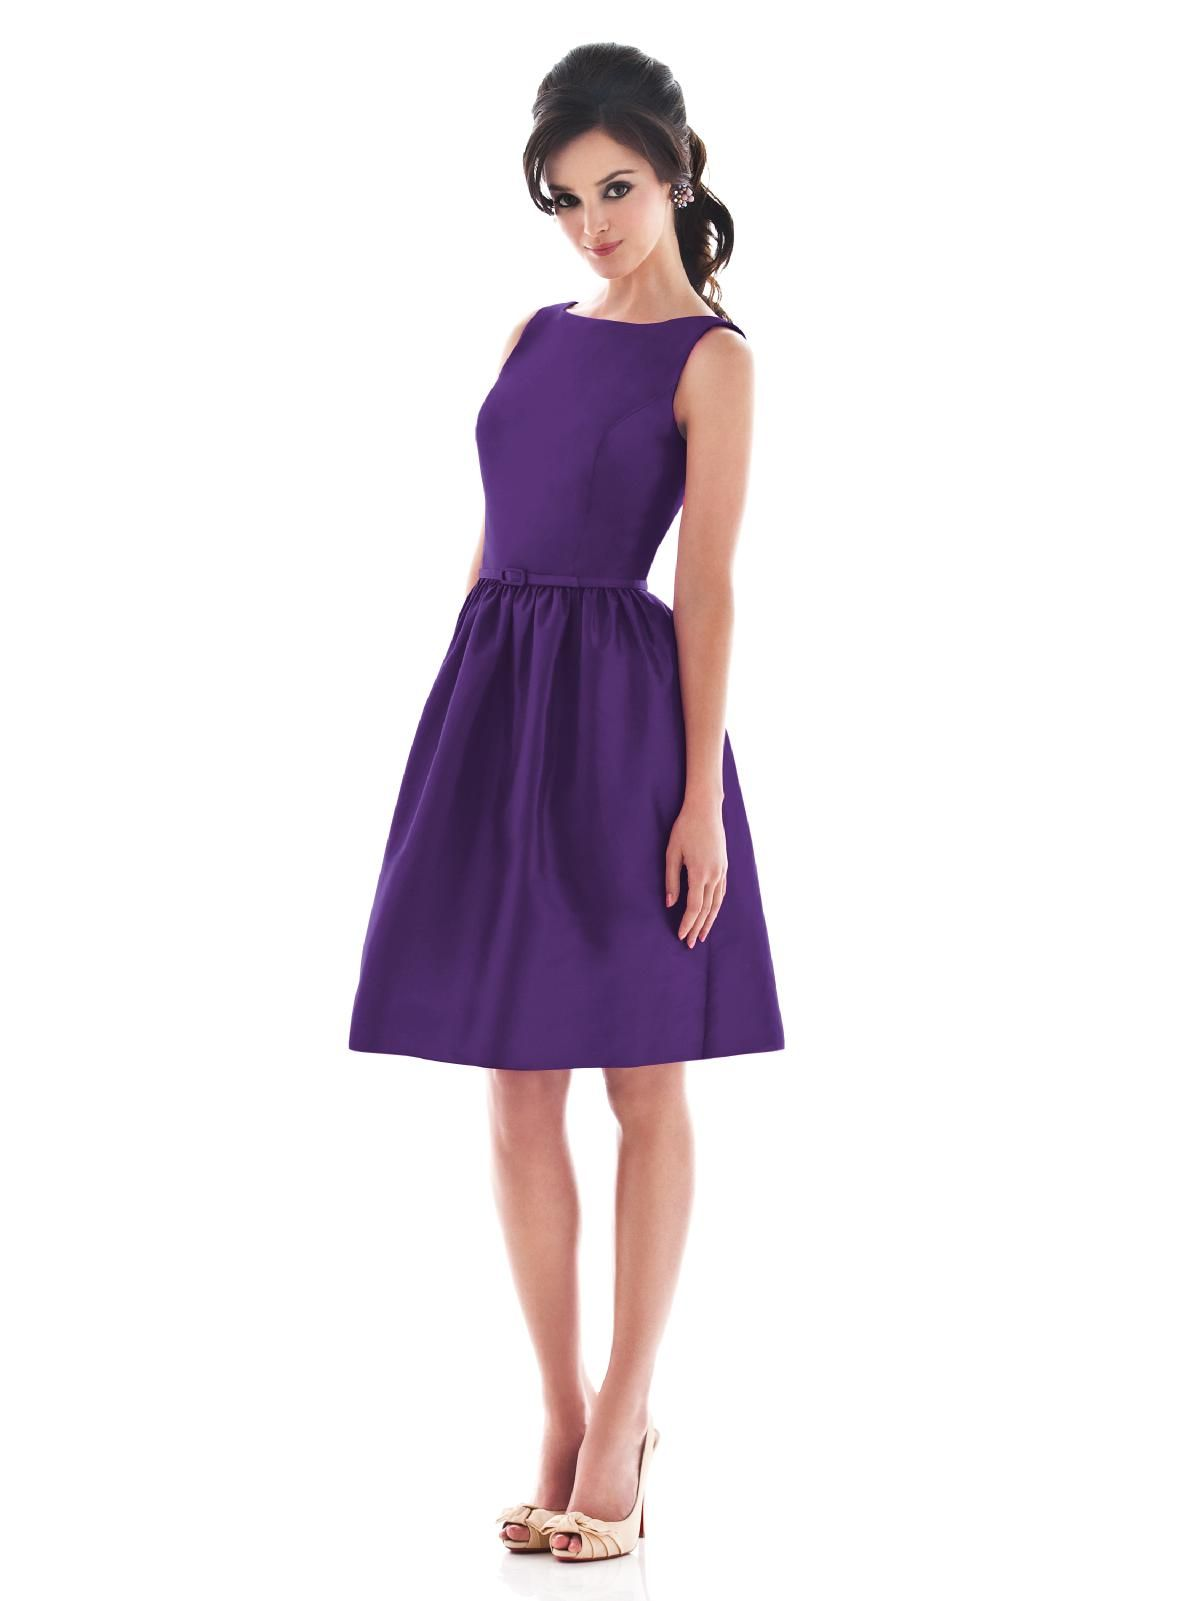 Love this audrey hepburn like dress in italian plum or love this audrey hepburn like dress in italian plum or majestic bridesmaid dress ombrellifo Image collections